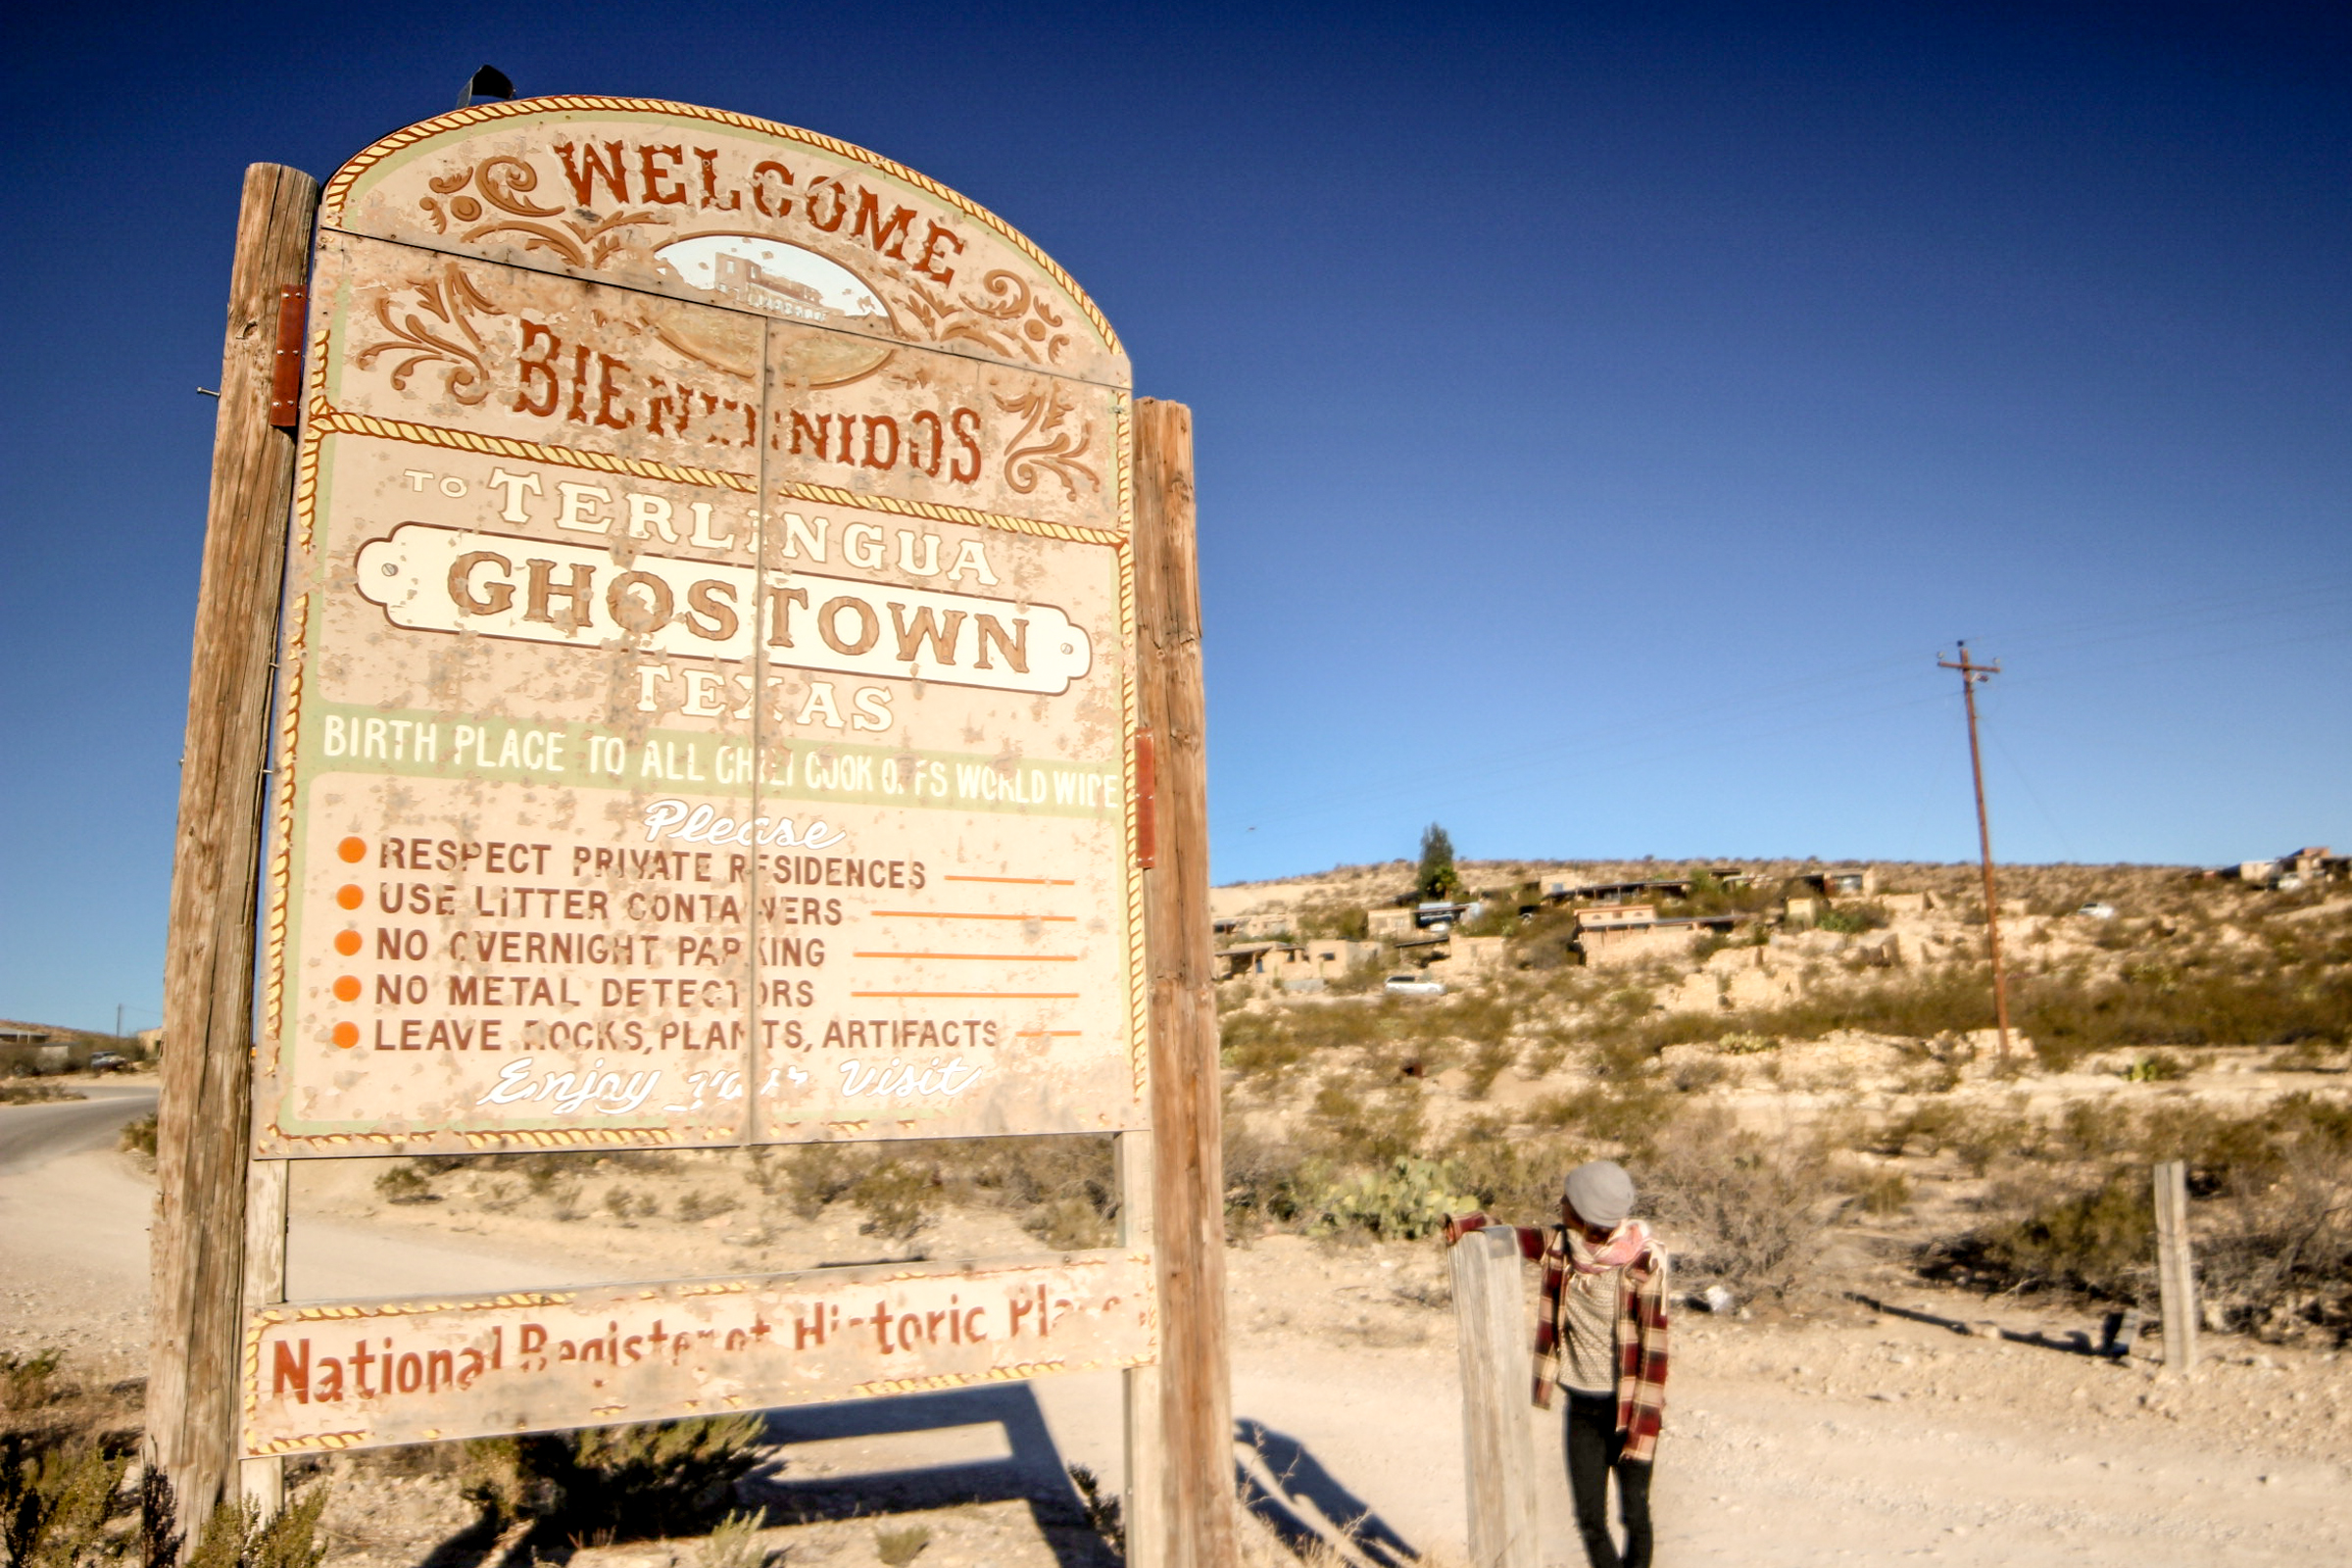 terlingua texas travel photography blog hipcamp